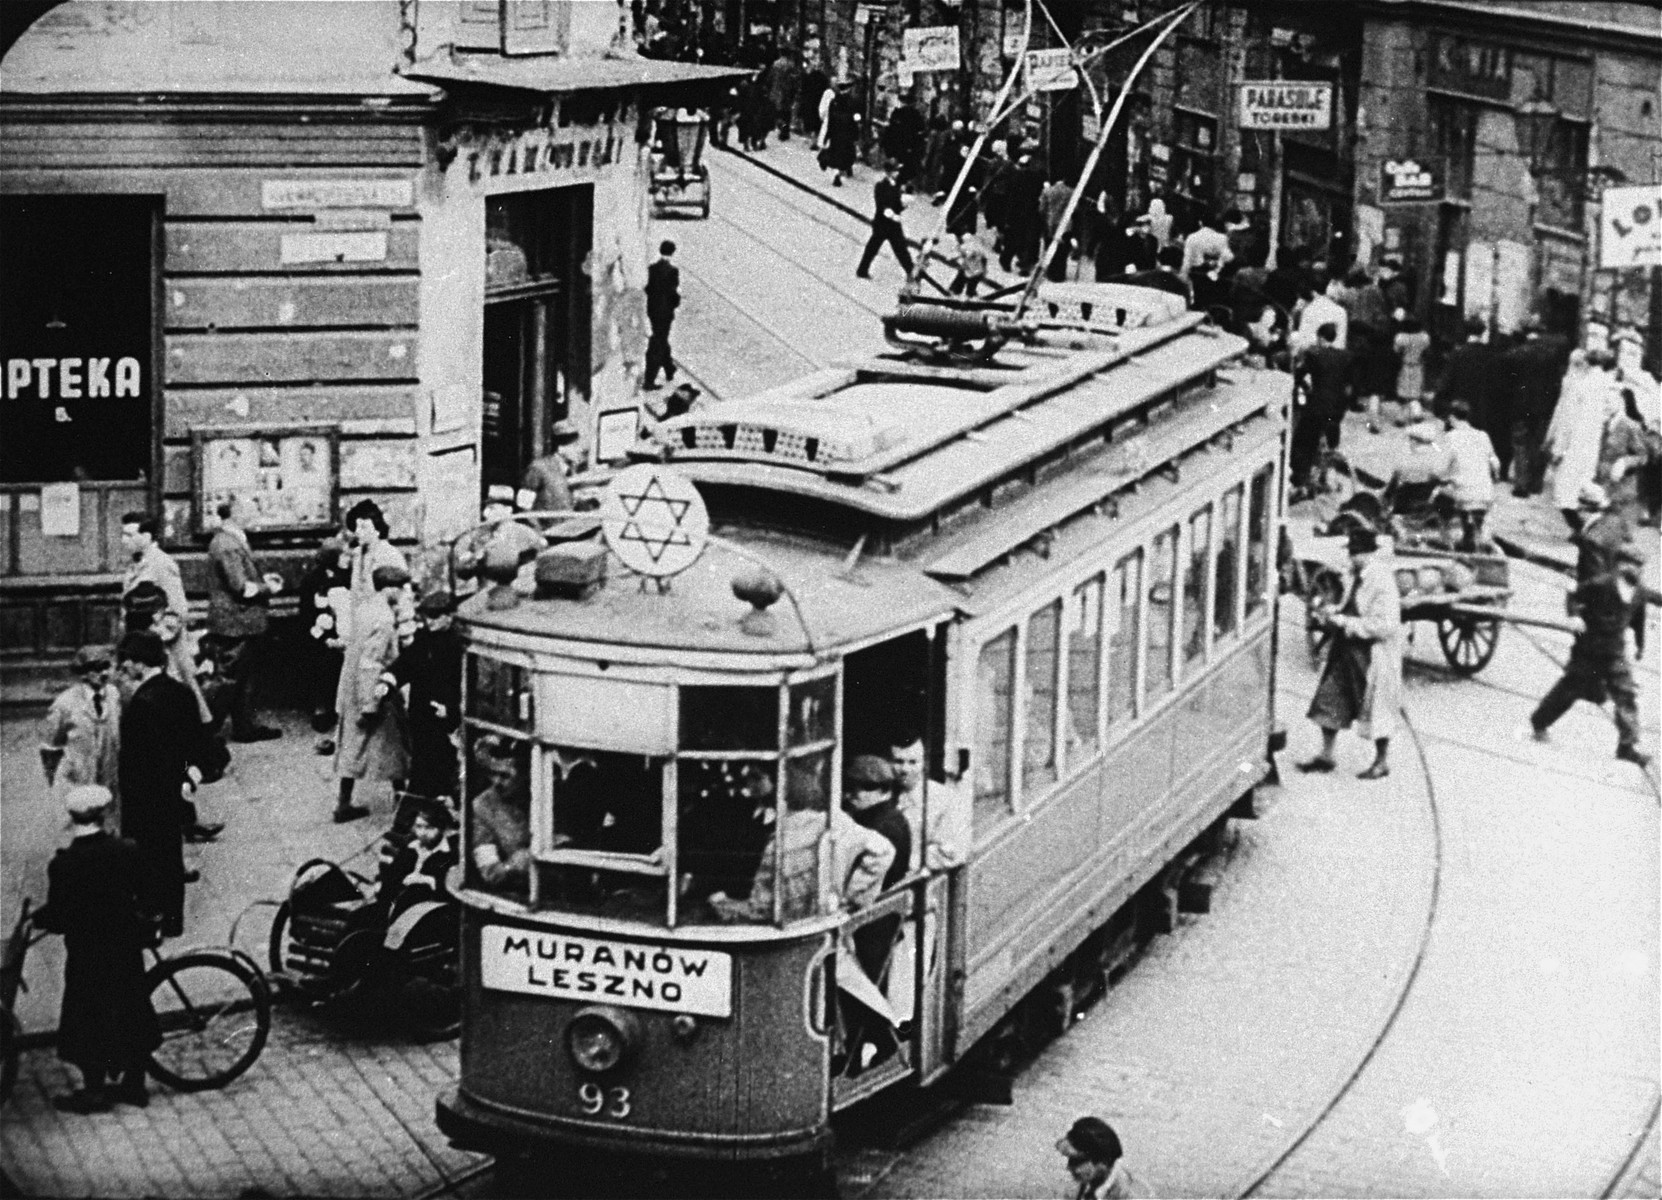 A streetcar turns through the intersection of Leszno and Karmelicka Streets in the Warsaw ghetto.